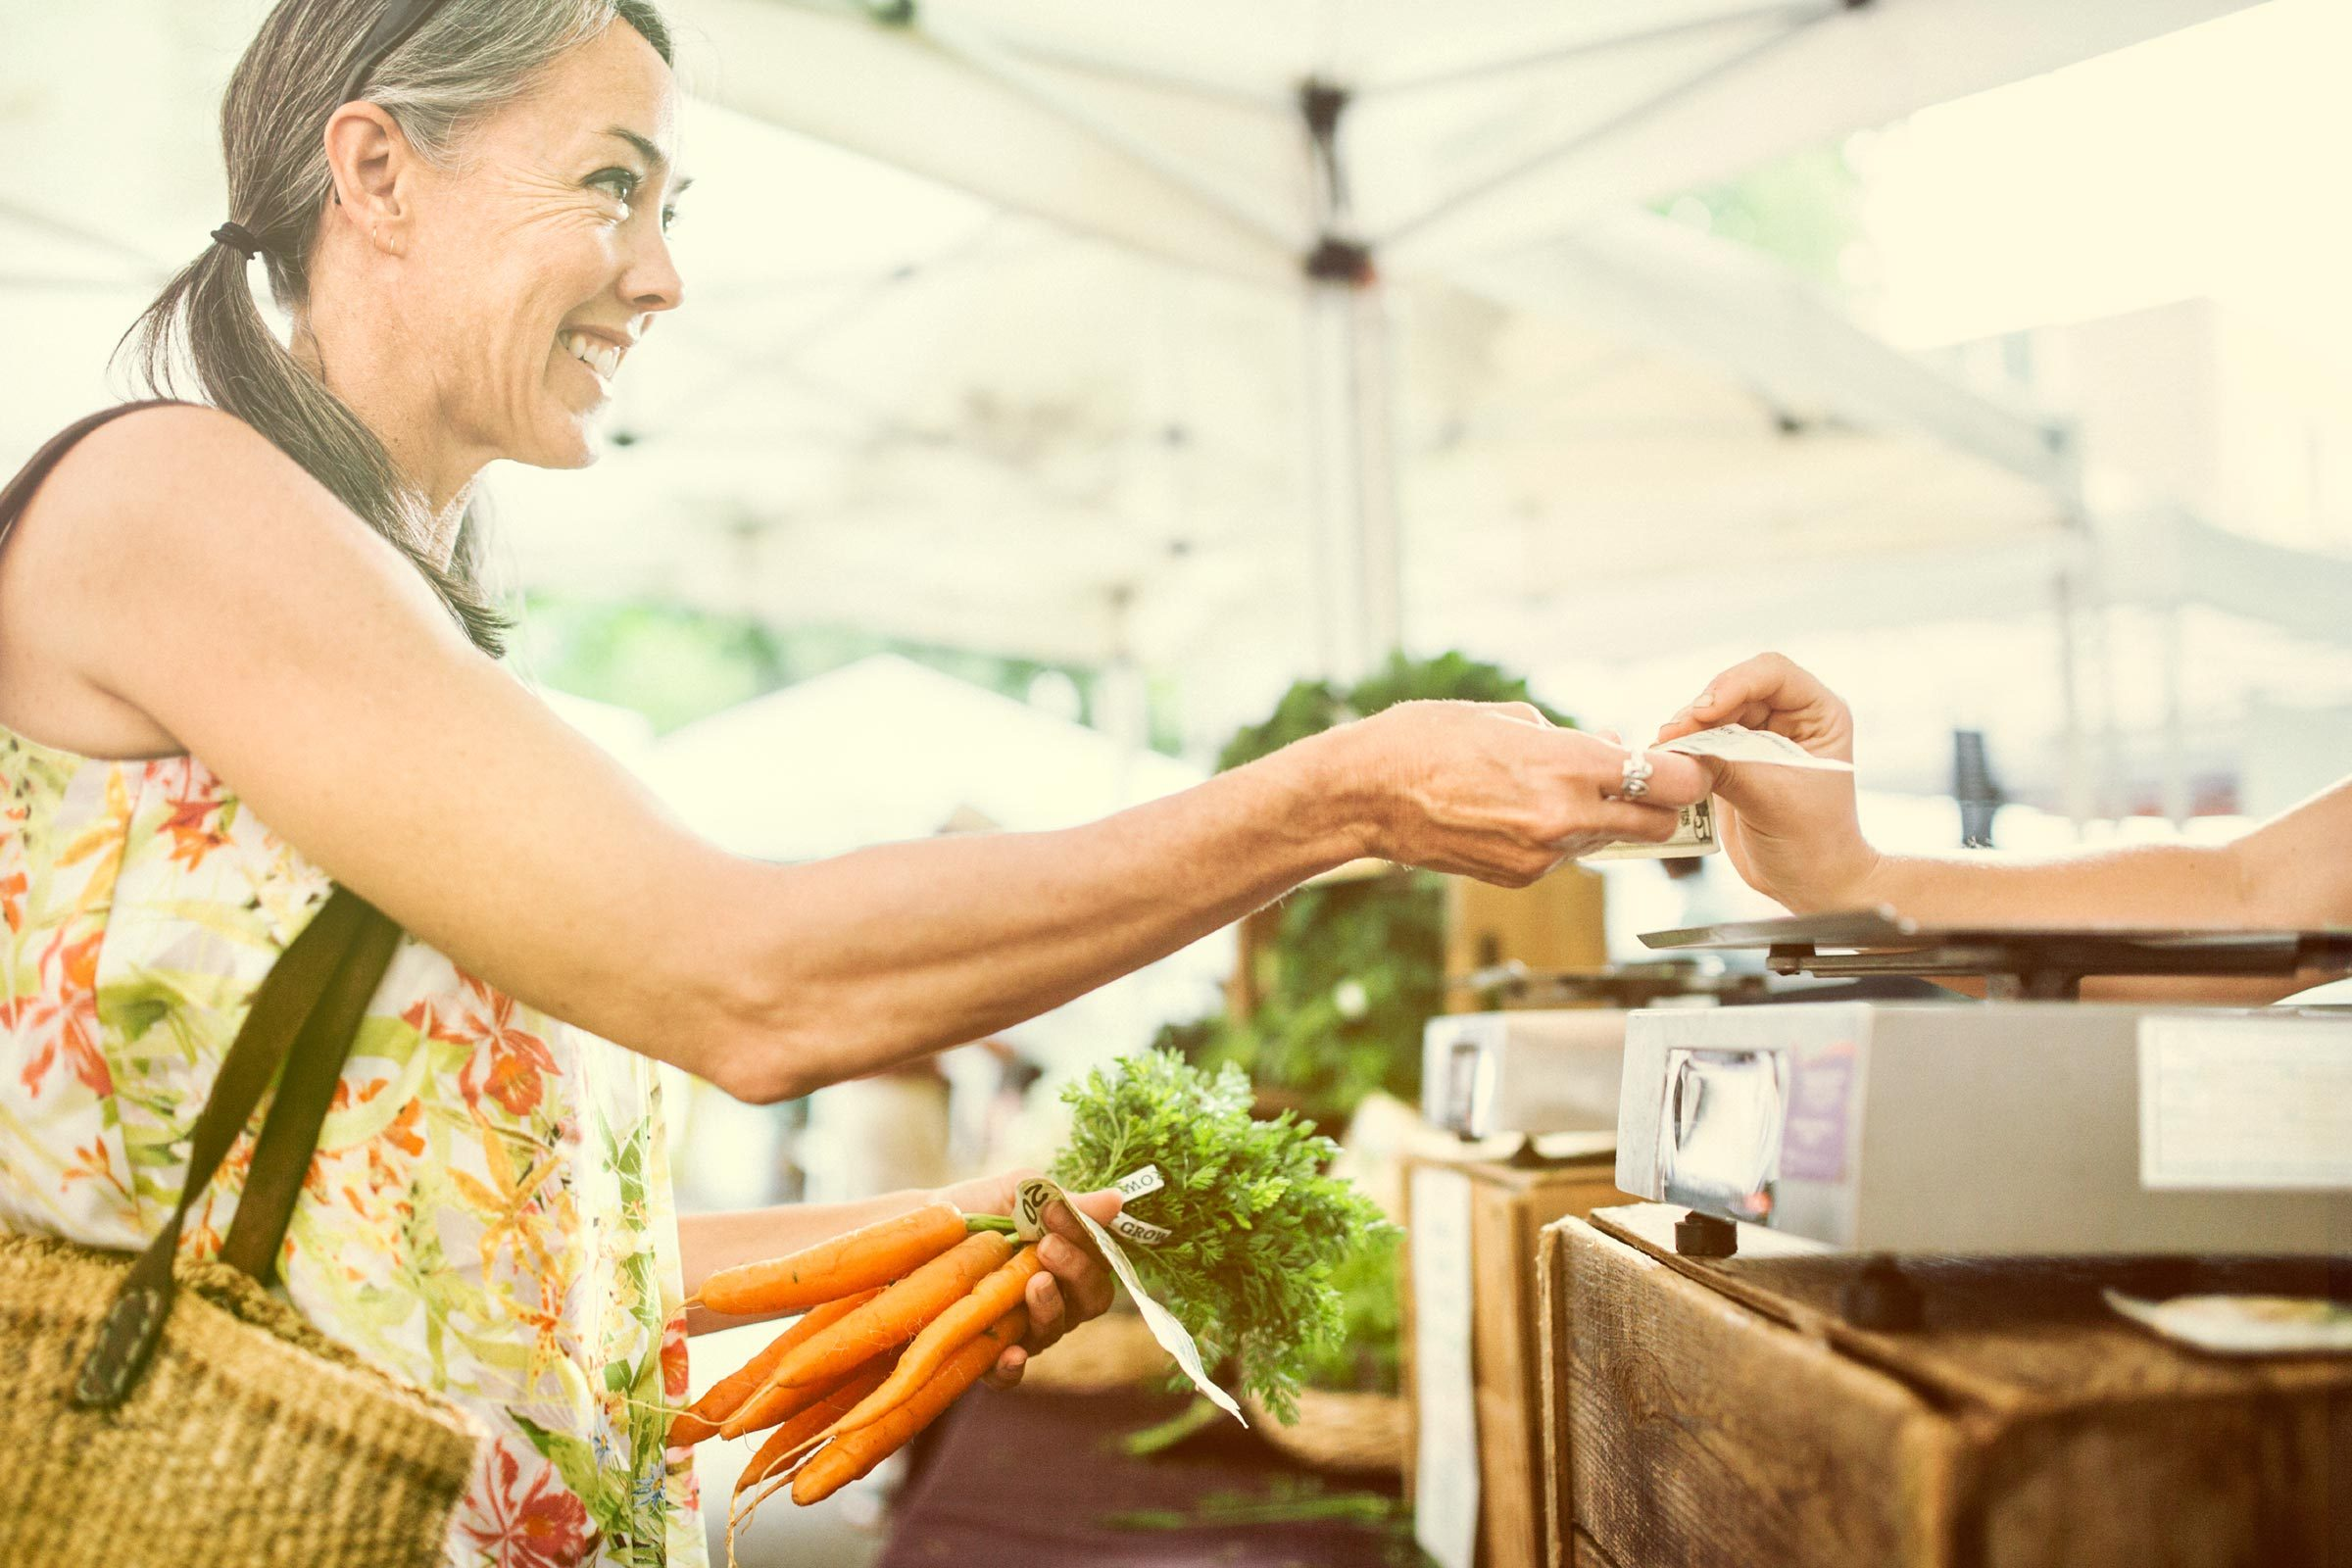 If you spend $100 at a farmers' market, $62 goes back into the local economy, and $99 out of $100 stays in the state